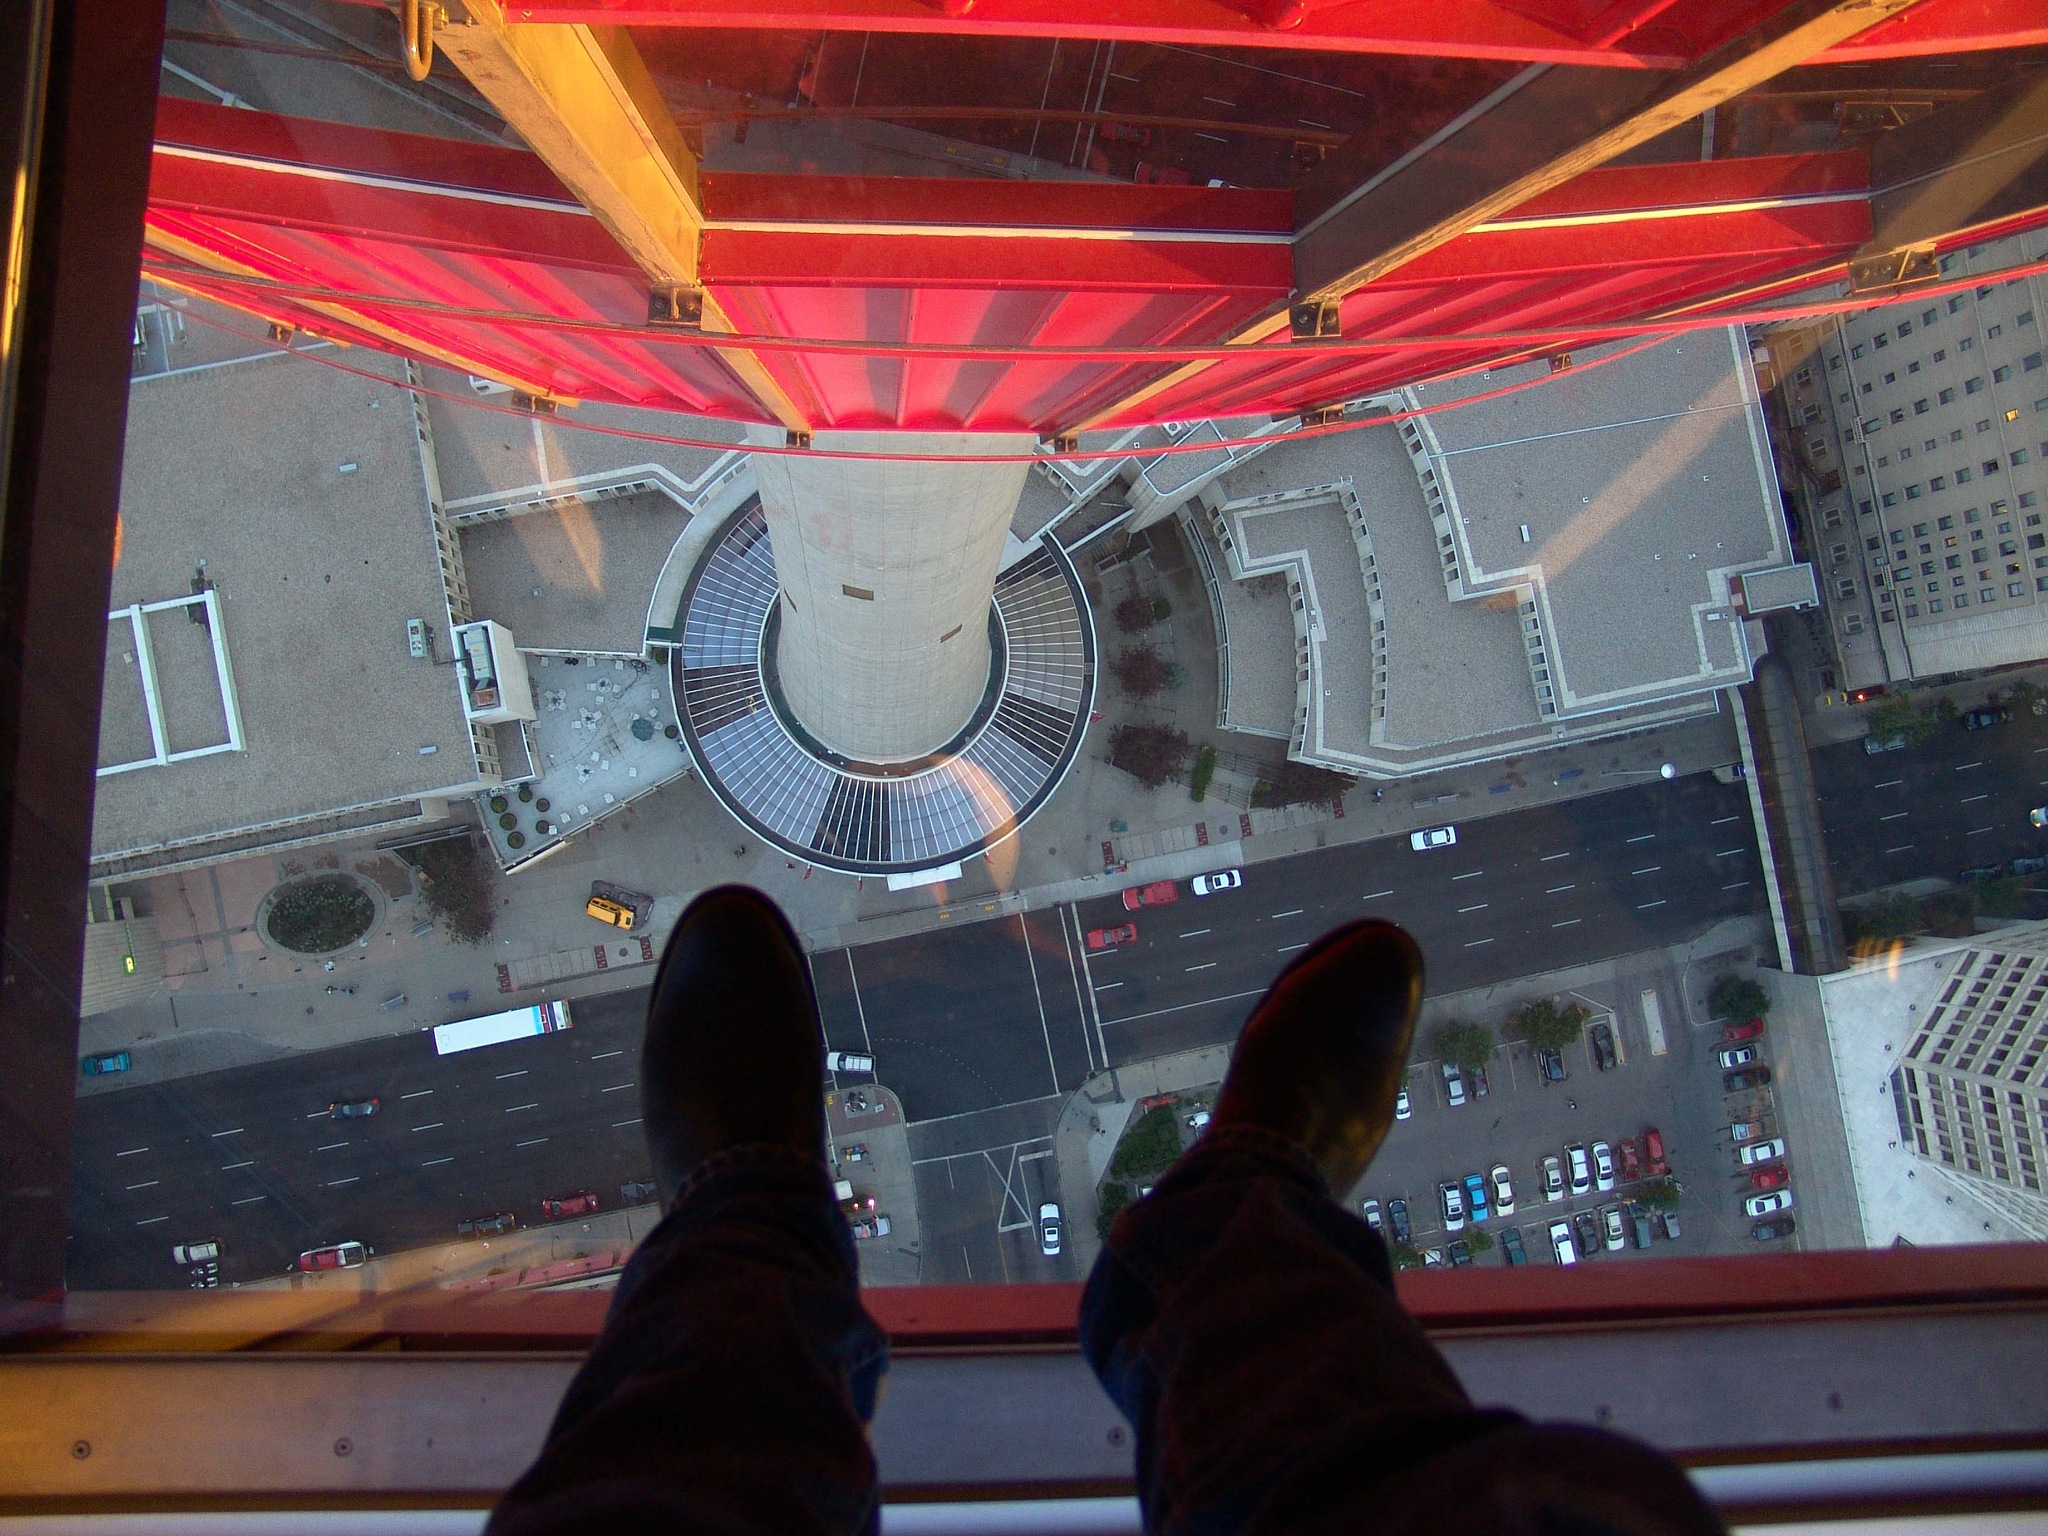 Calgary tower, glass floor by Miloliidrifter